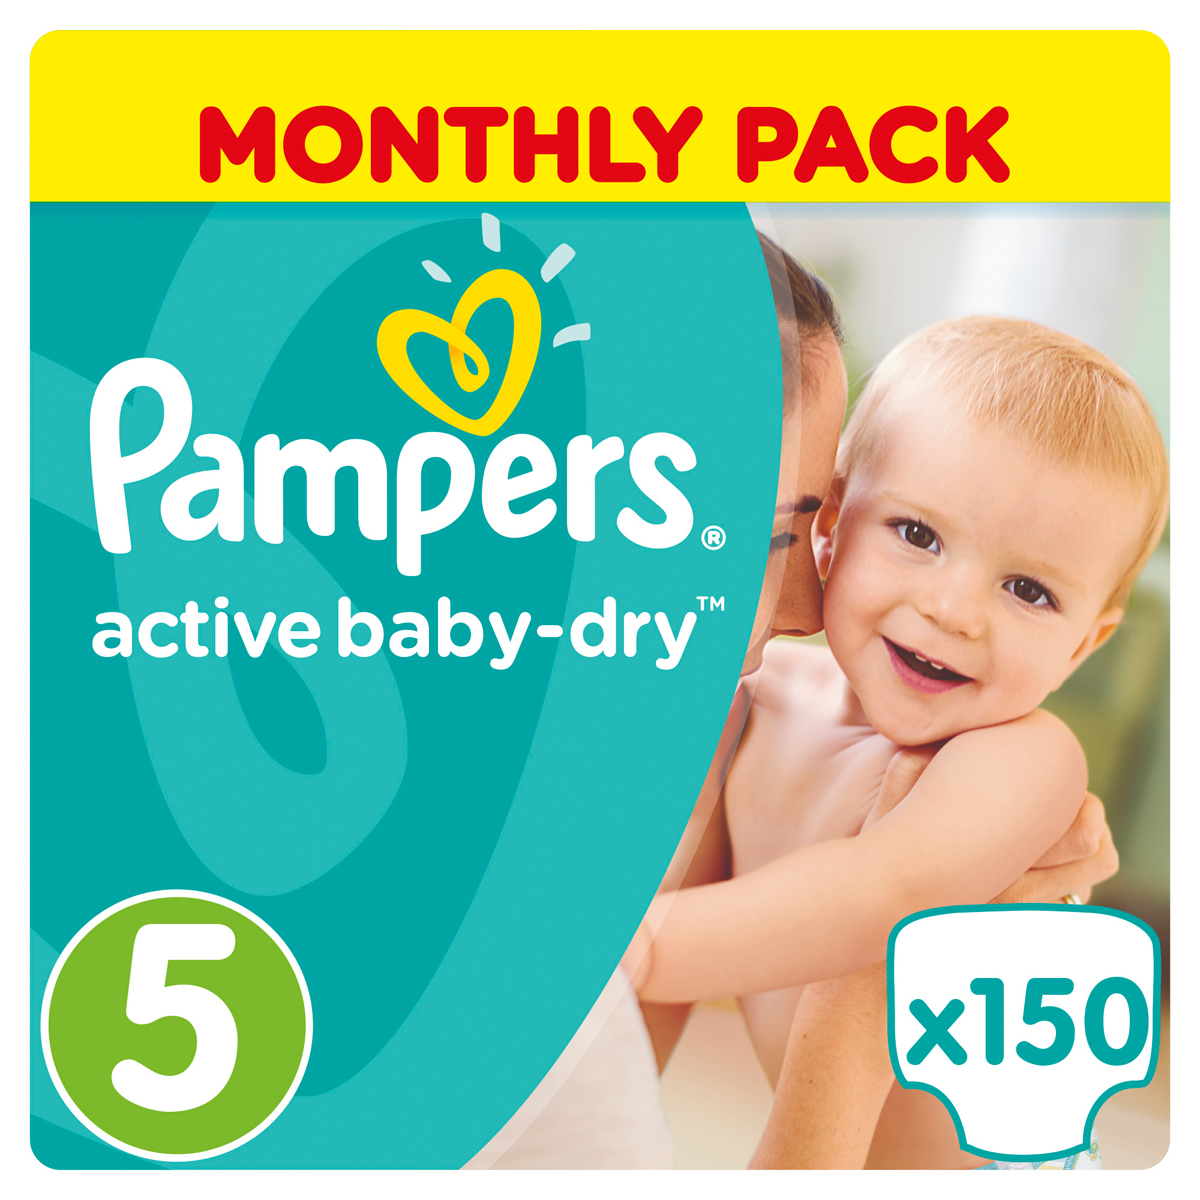 Pampers Подгузники Active Baby-Dry 11-18 кг Junior 150 шт подгузники pampers active baby dry размер 4 7 14 кг 132 шт